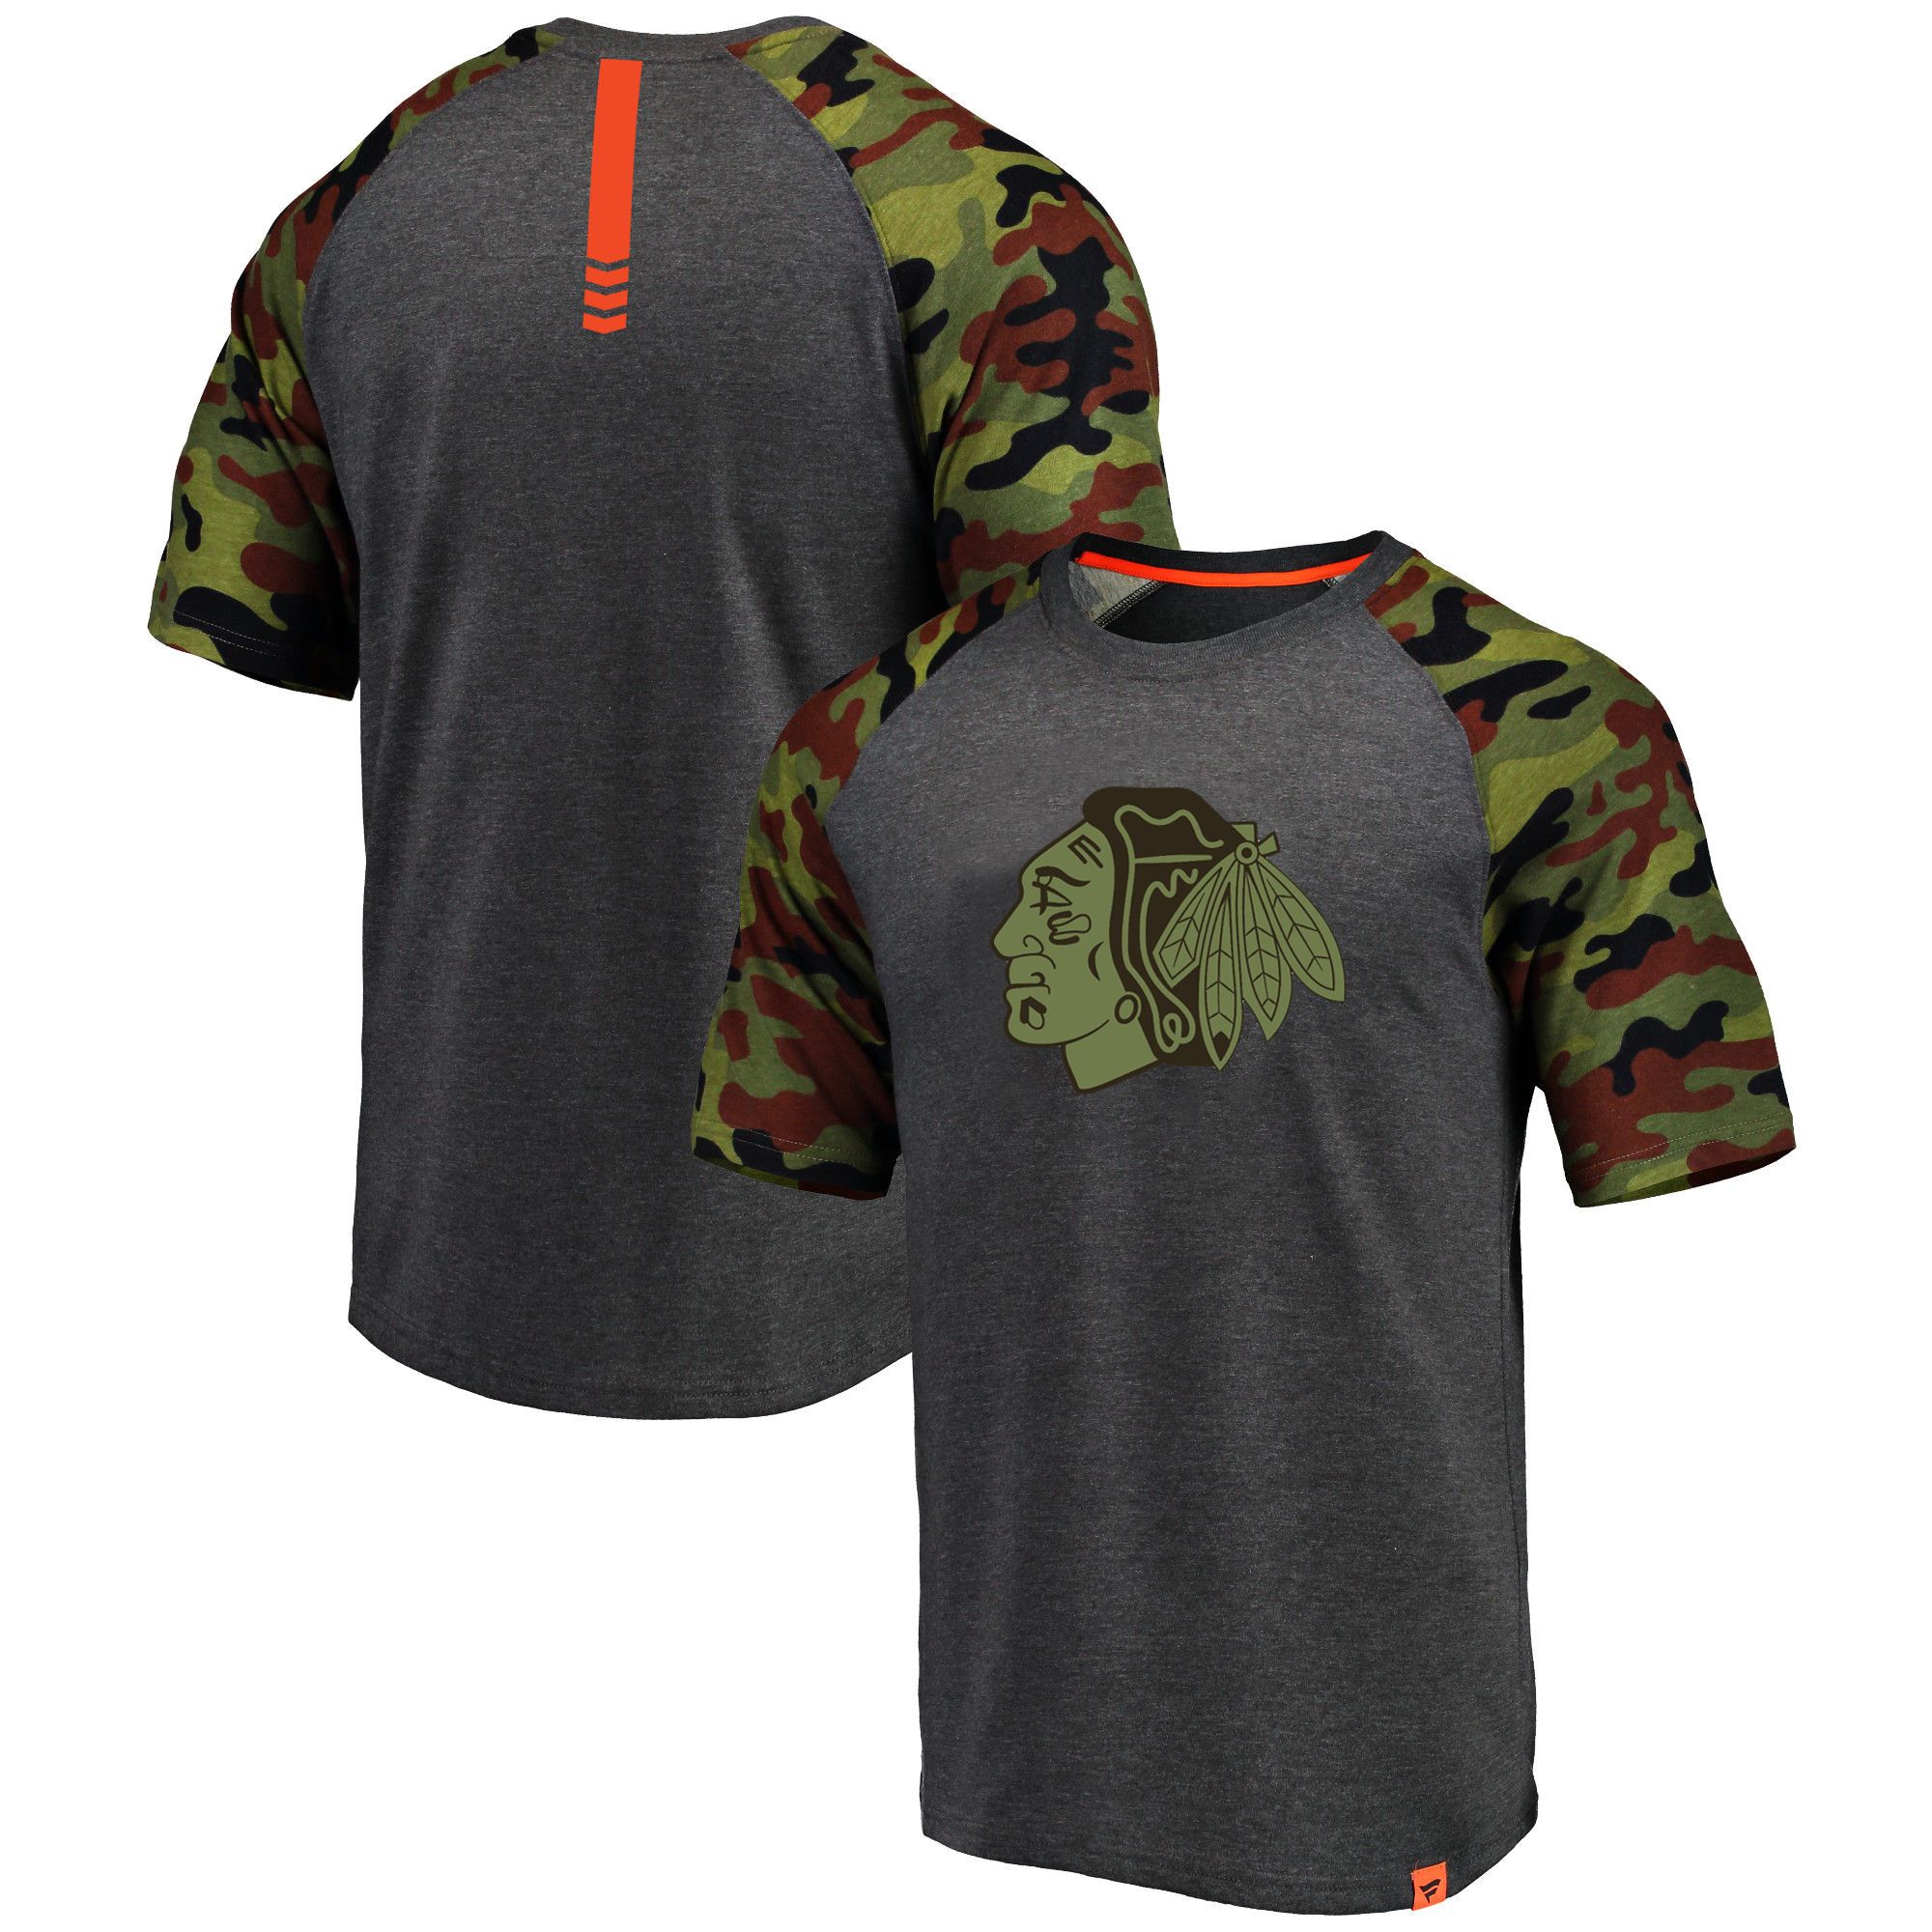 Chicago Blackhawks Fanatics Branded Heathered Gray/Camo Recon Camo Raglan T-Shirt